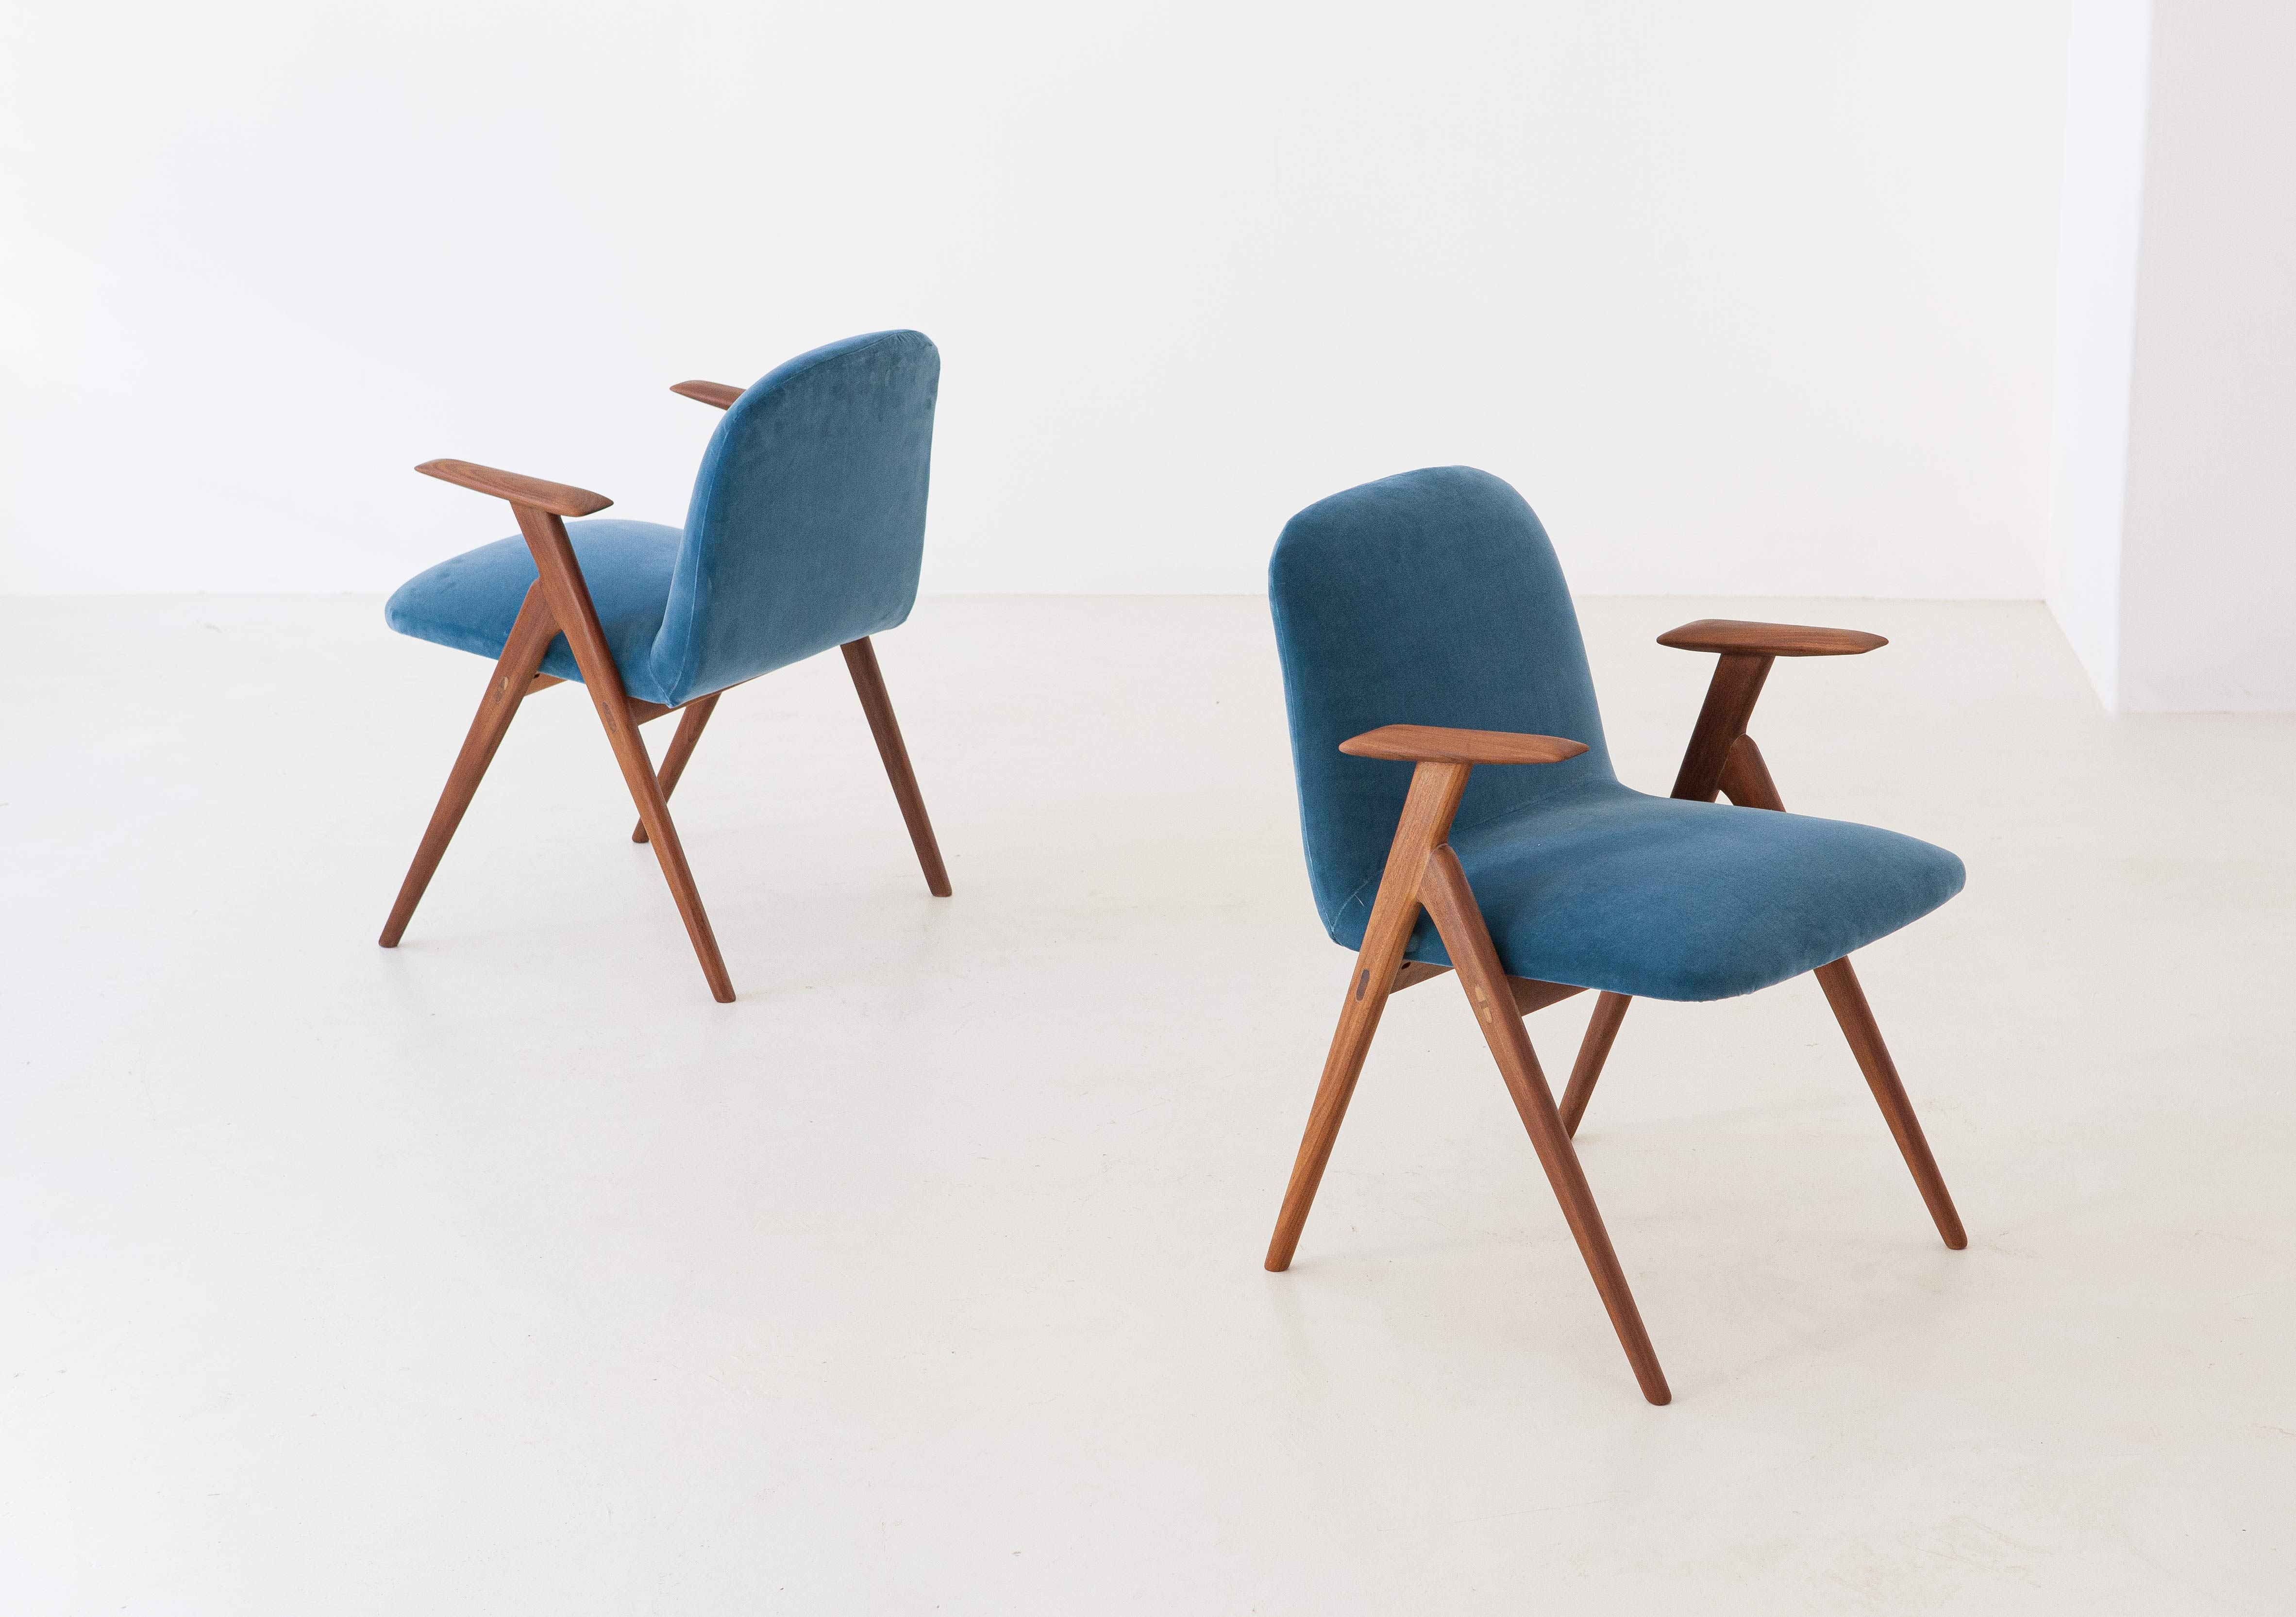 1950s-italian-rosewood-and-blue-velvet-armchairs-2-se216